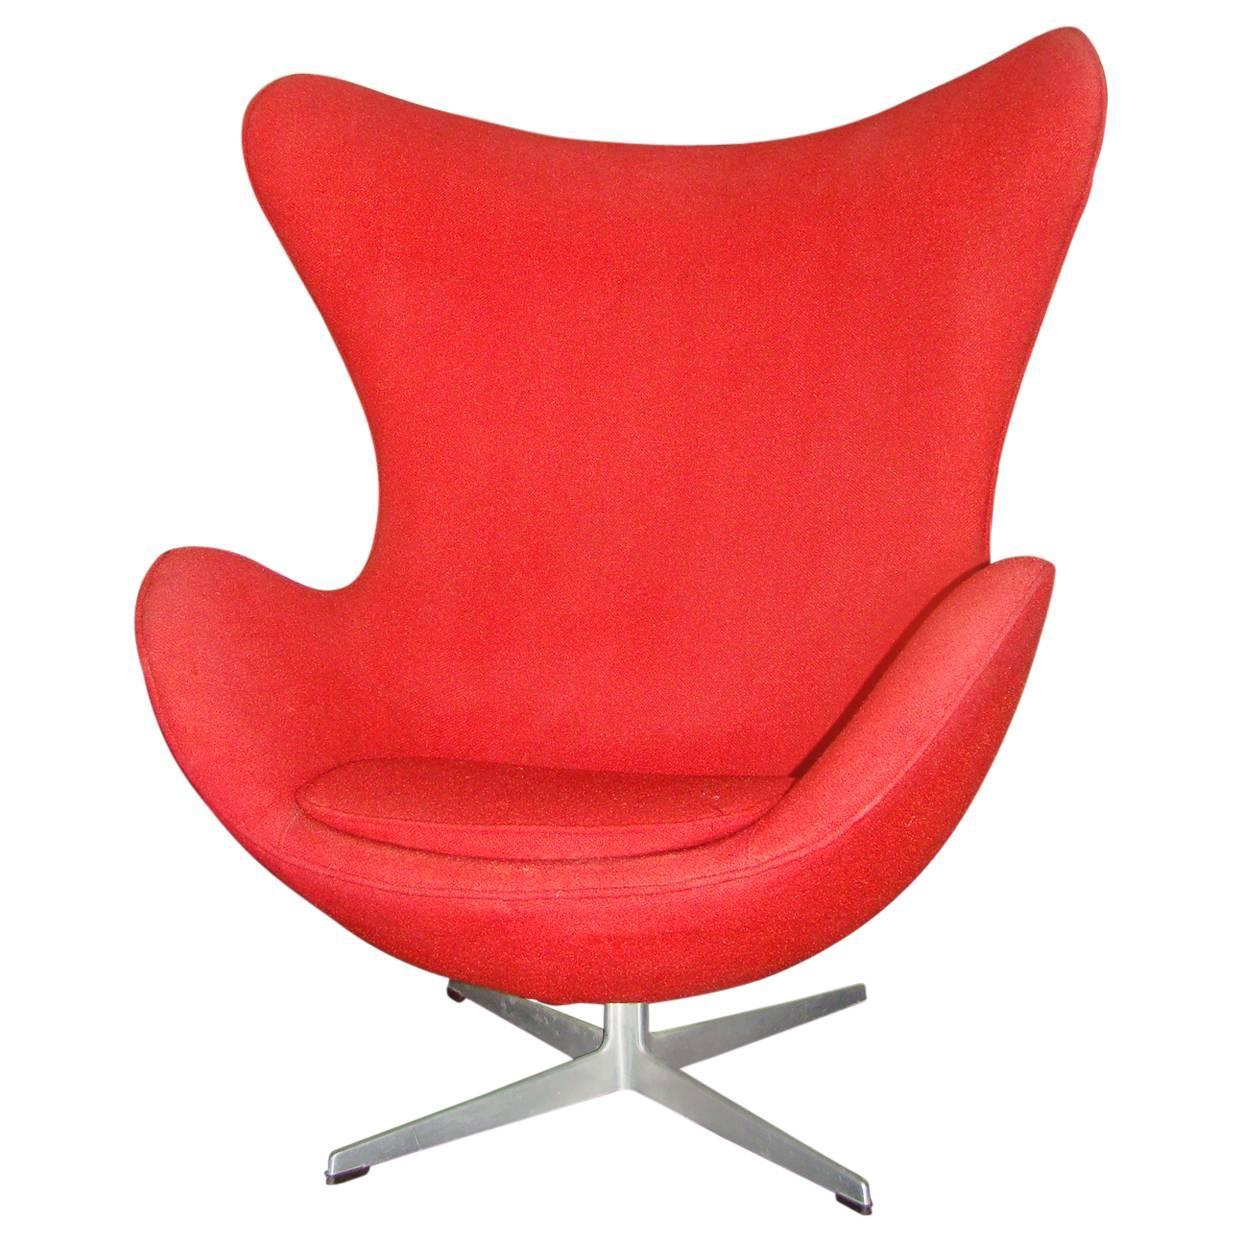 egg chairs for sale fishing in chair early arne jacobsen fritz hansen at 1stdibs